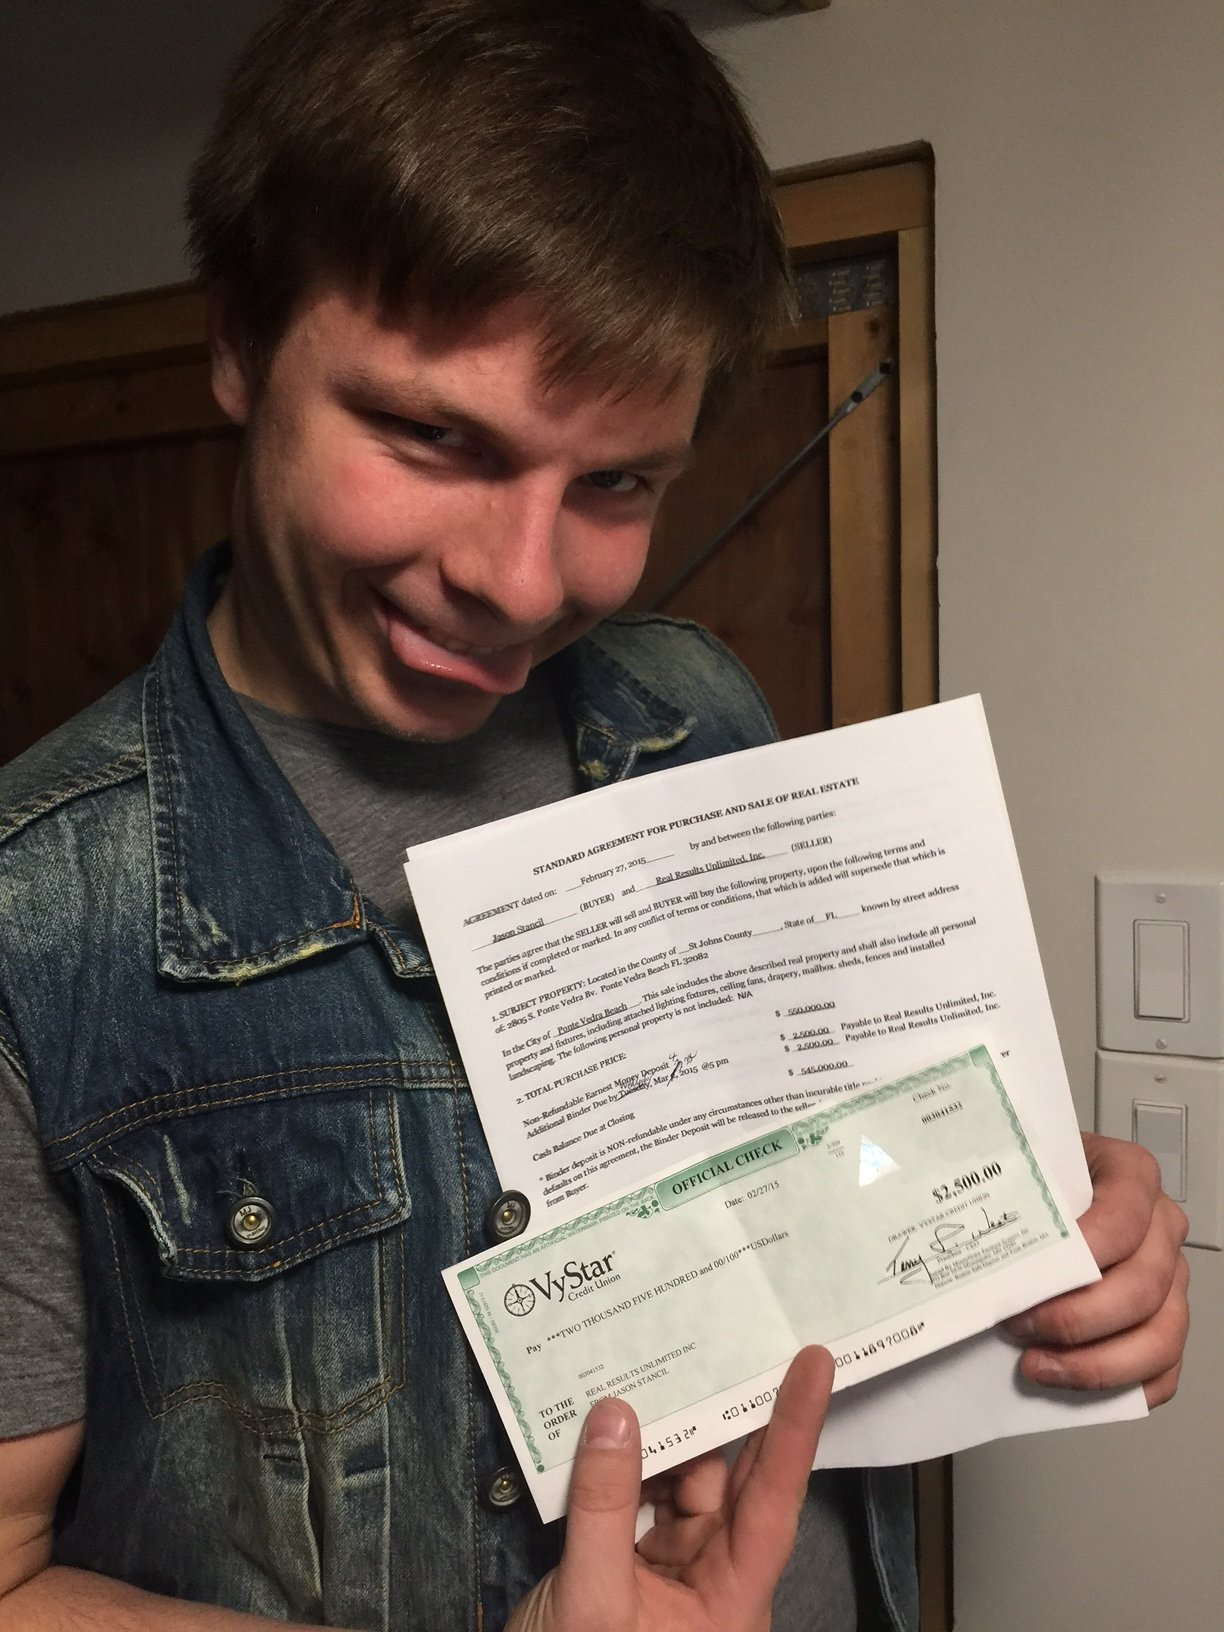 So Yeah, this is a photo of Derek when he signed the contract with his buyer.